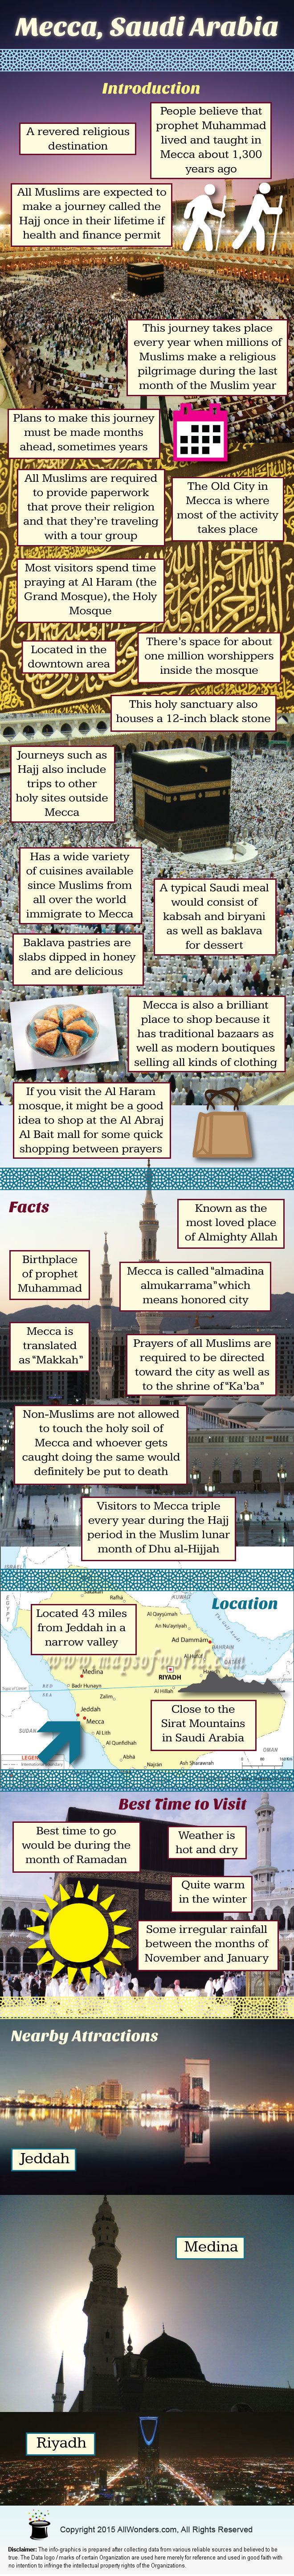 Mecca Travel Infographic